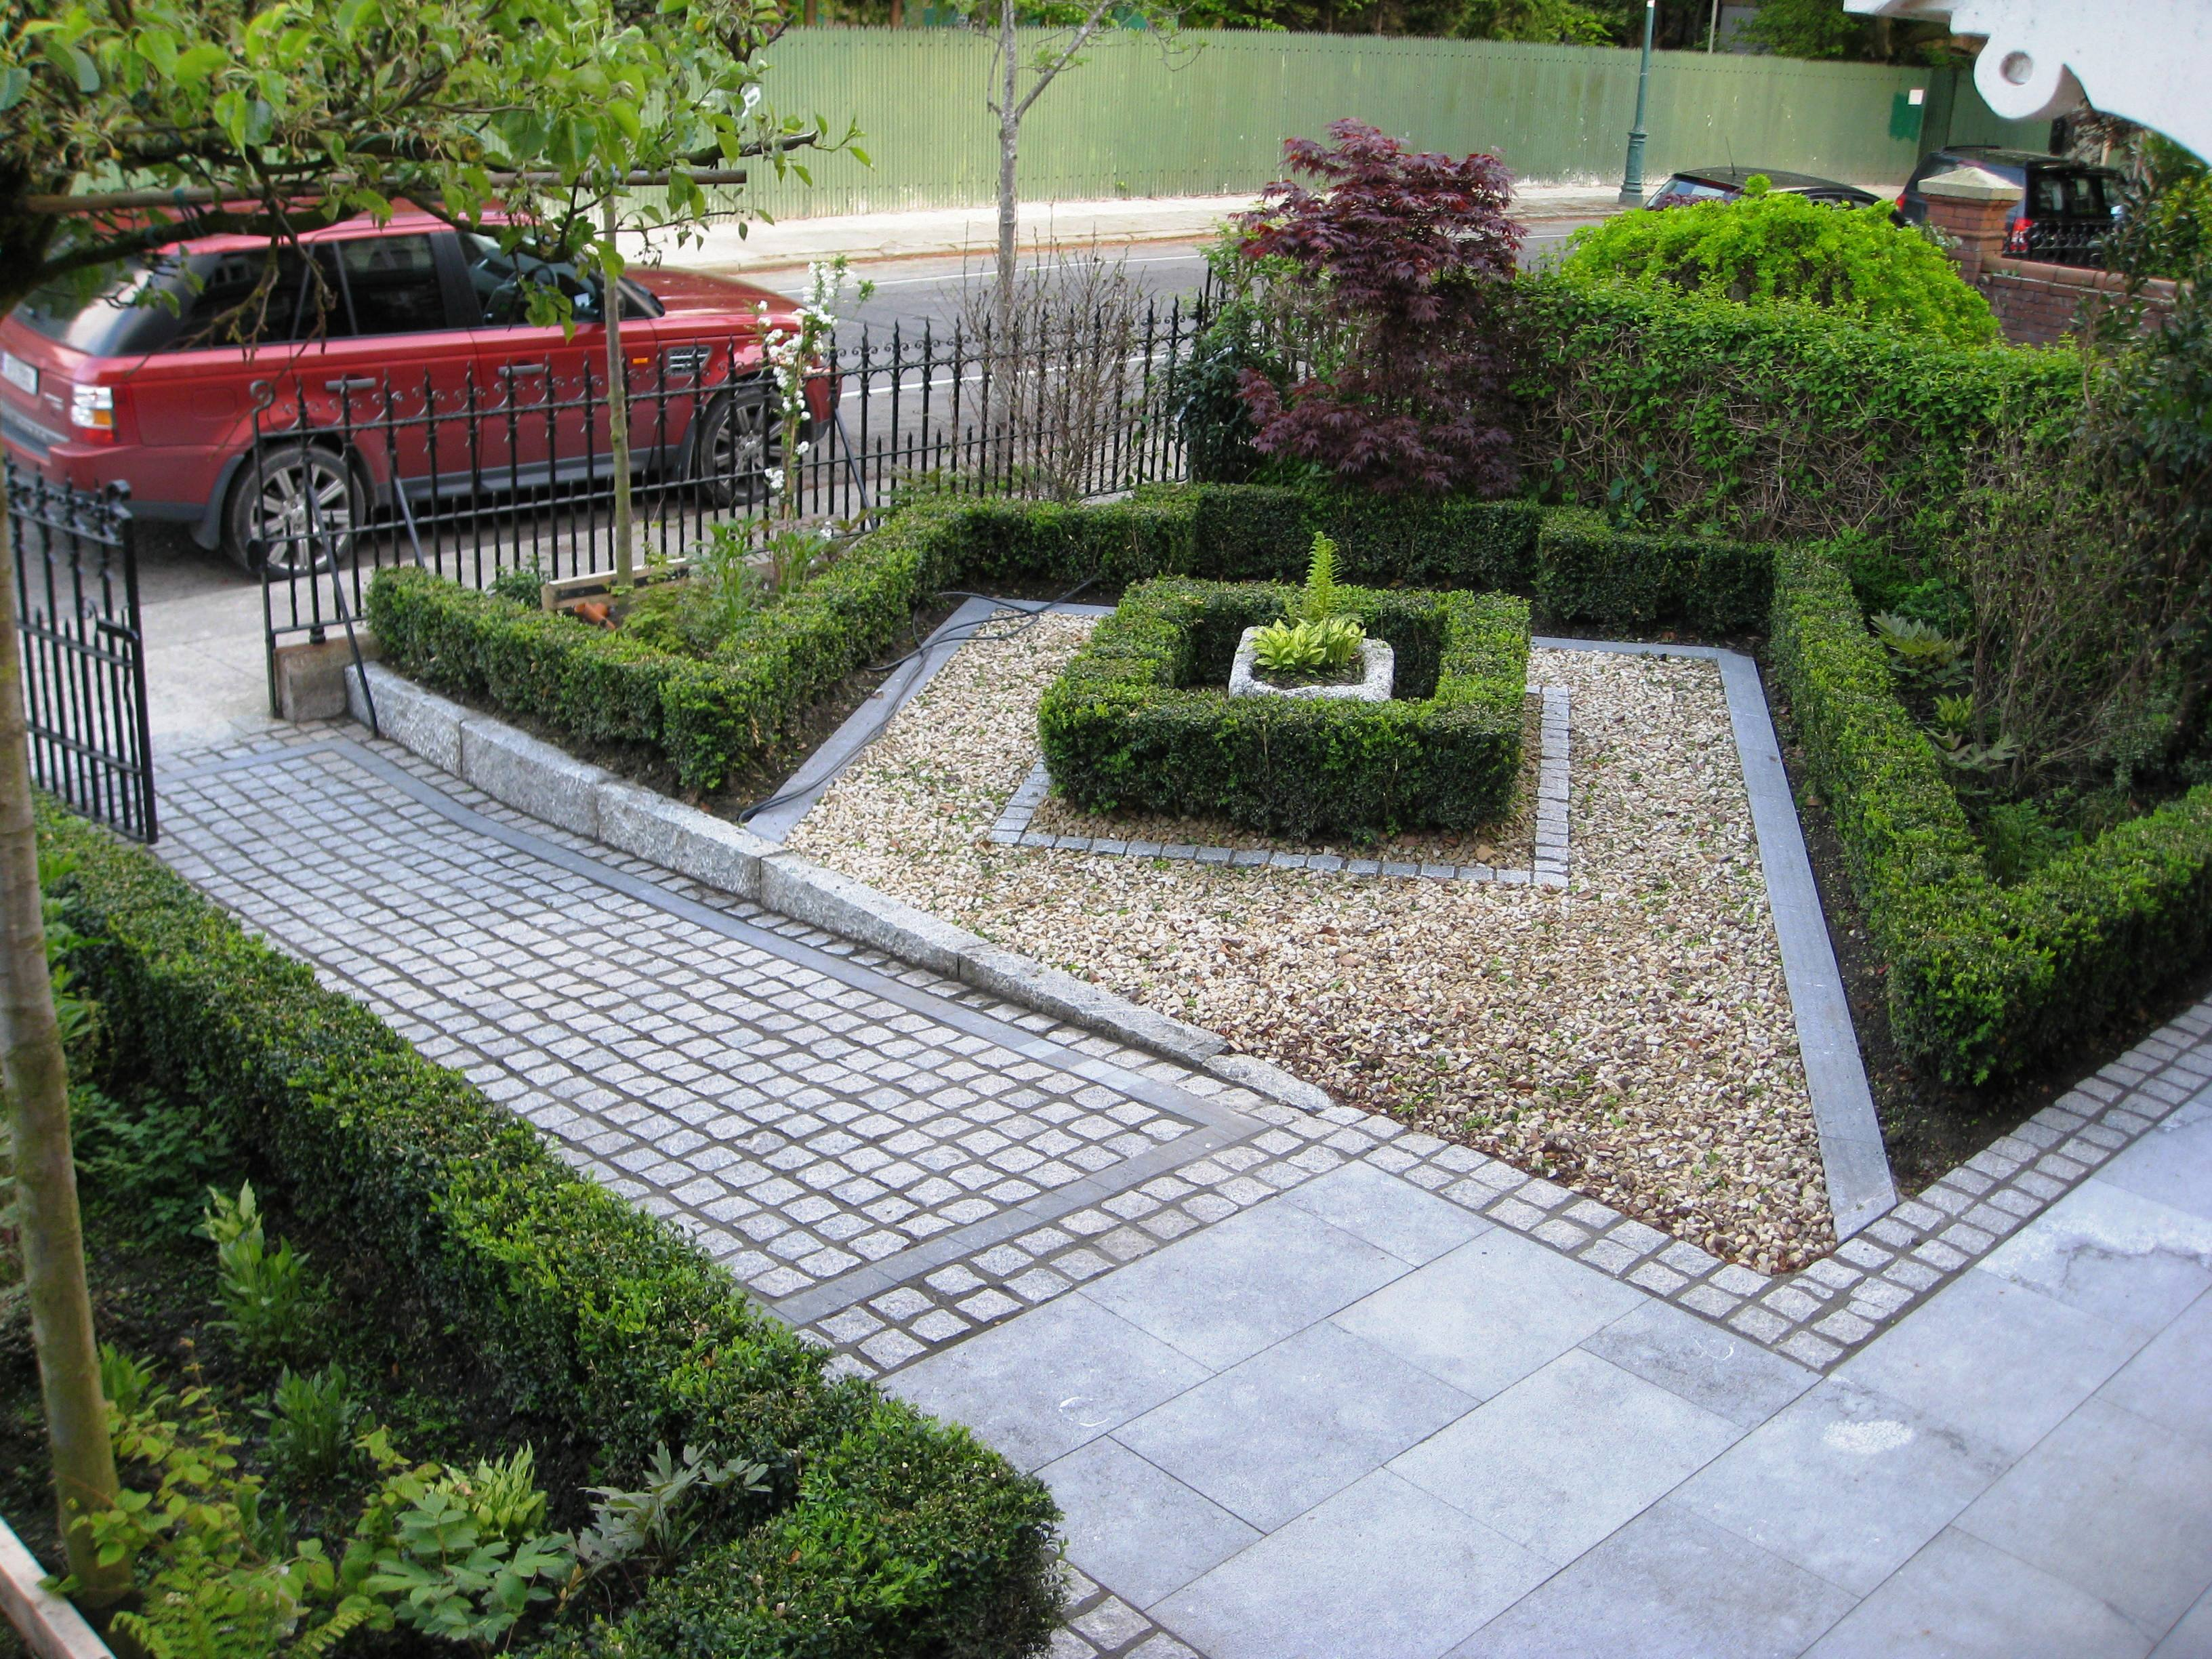 Smart front garden design in dublin tim austen garden for Front yard garden ideas designs